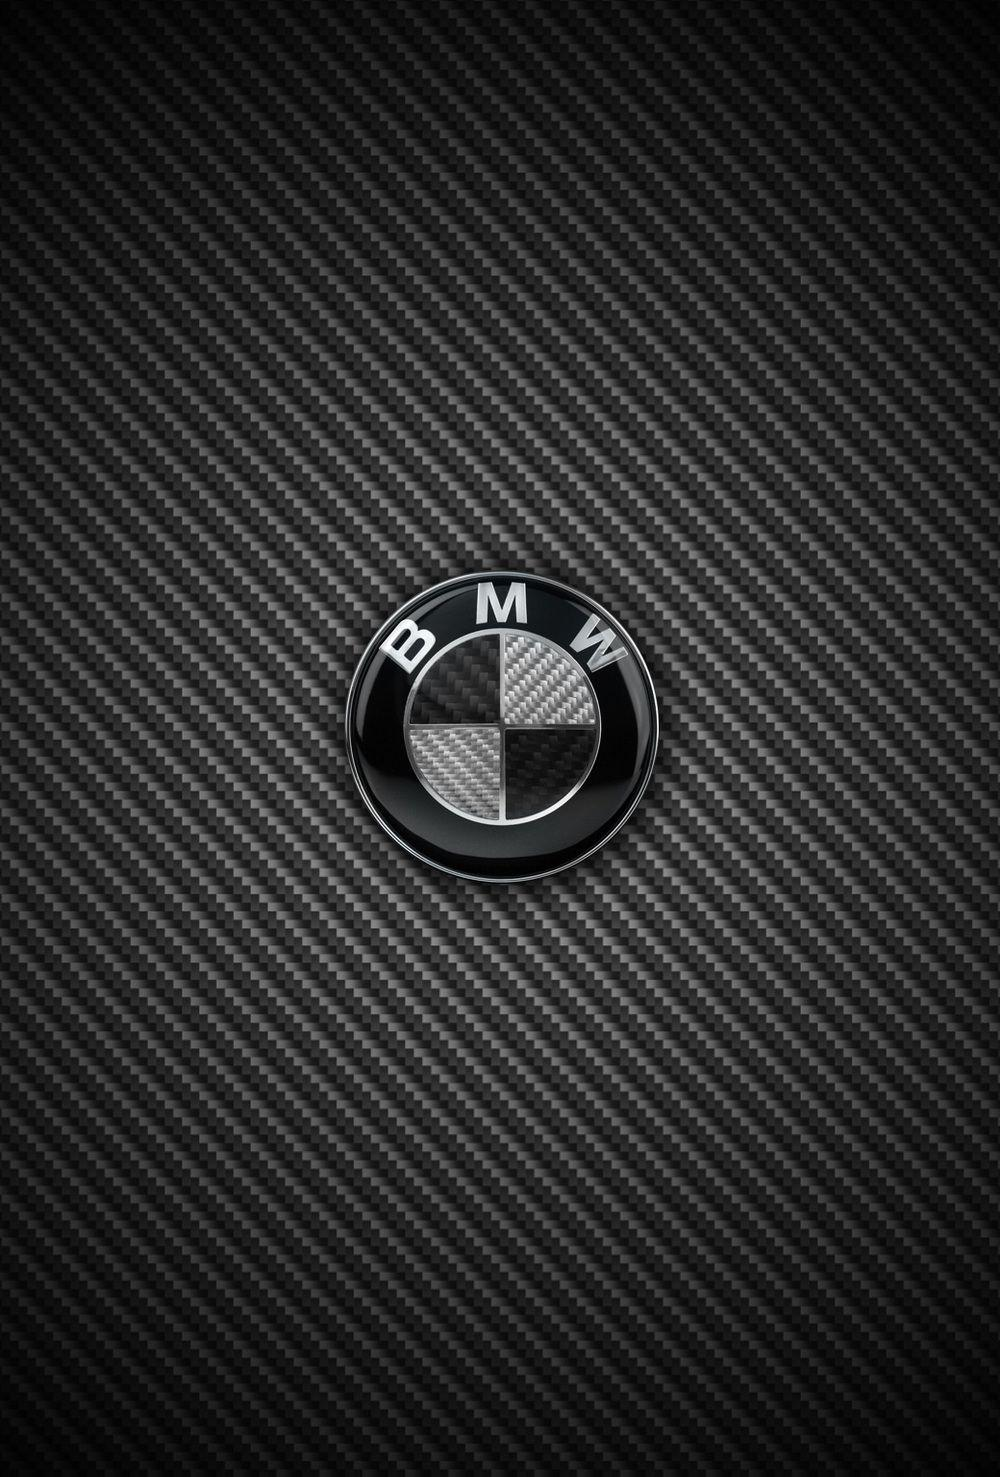 Bmw X6 Wallpaper Iphone Bmw M Power Wallpapers Wallpaper Cave